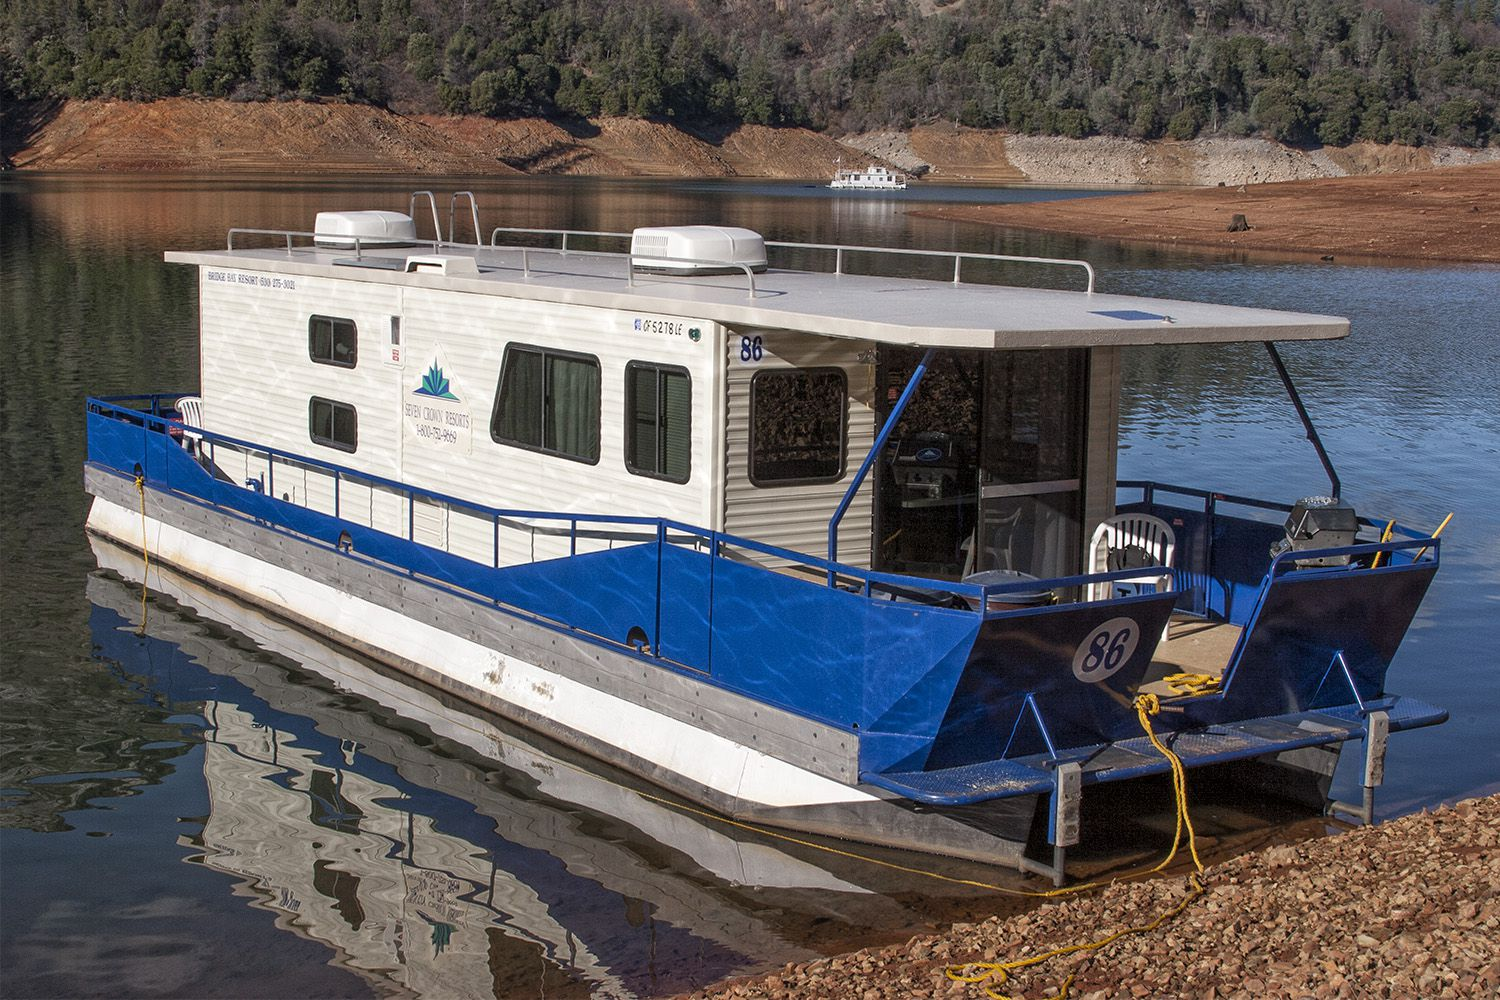 How to Rent a Lake Shasta Houseboat: Know Before You Go